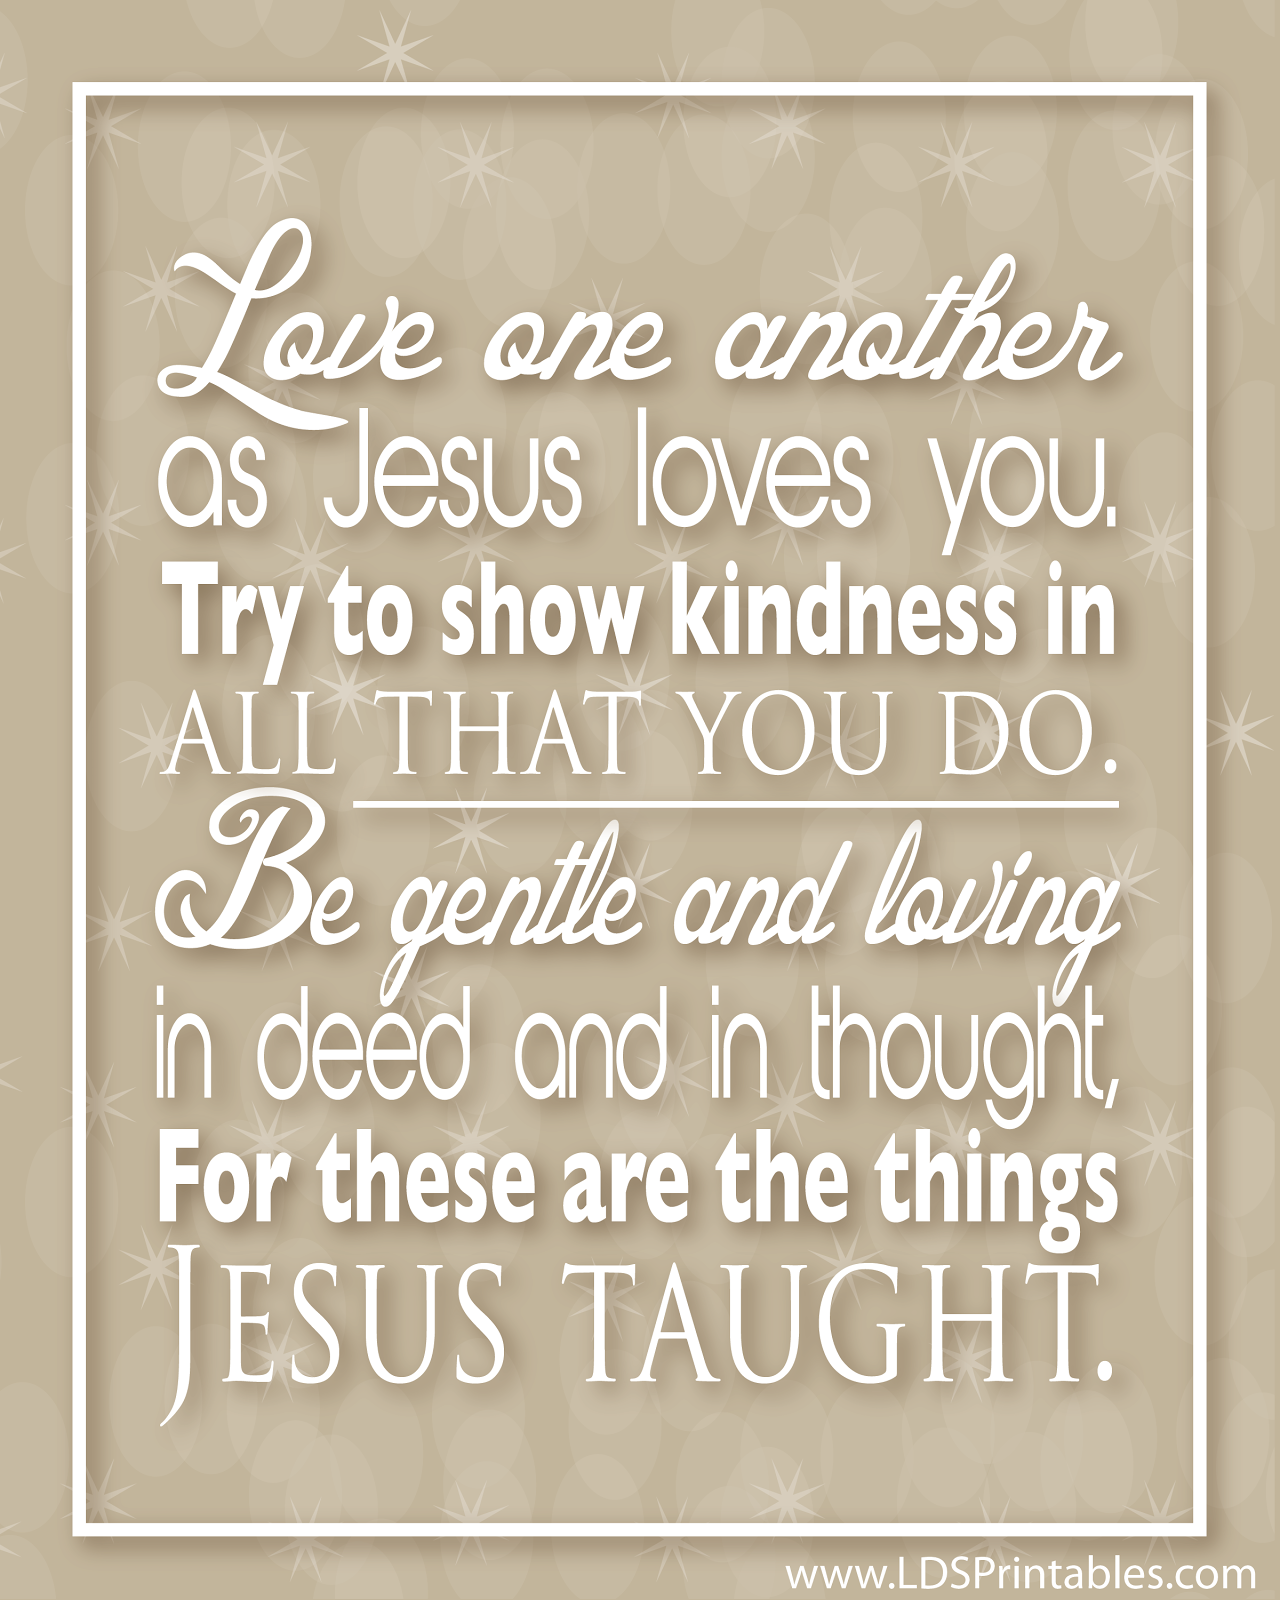 Be gentle and loving in deed and in thought for these are the things Jesus taught